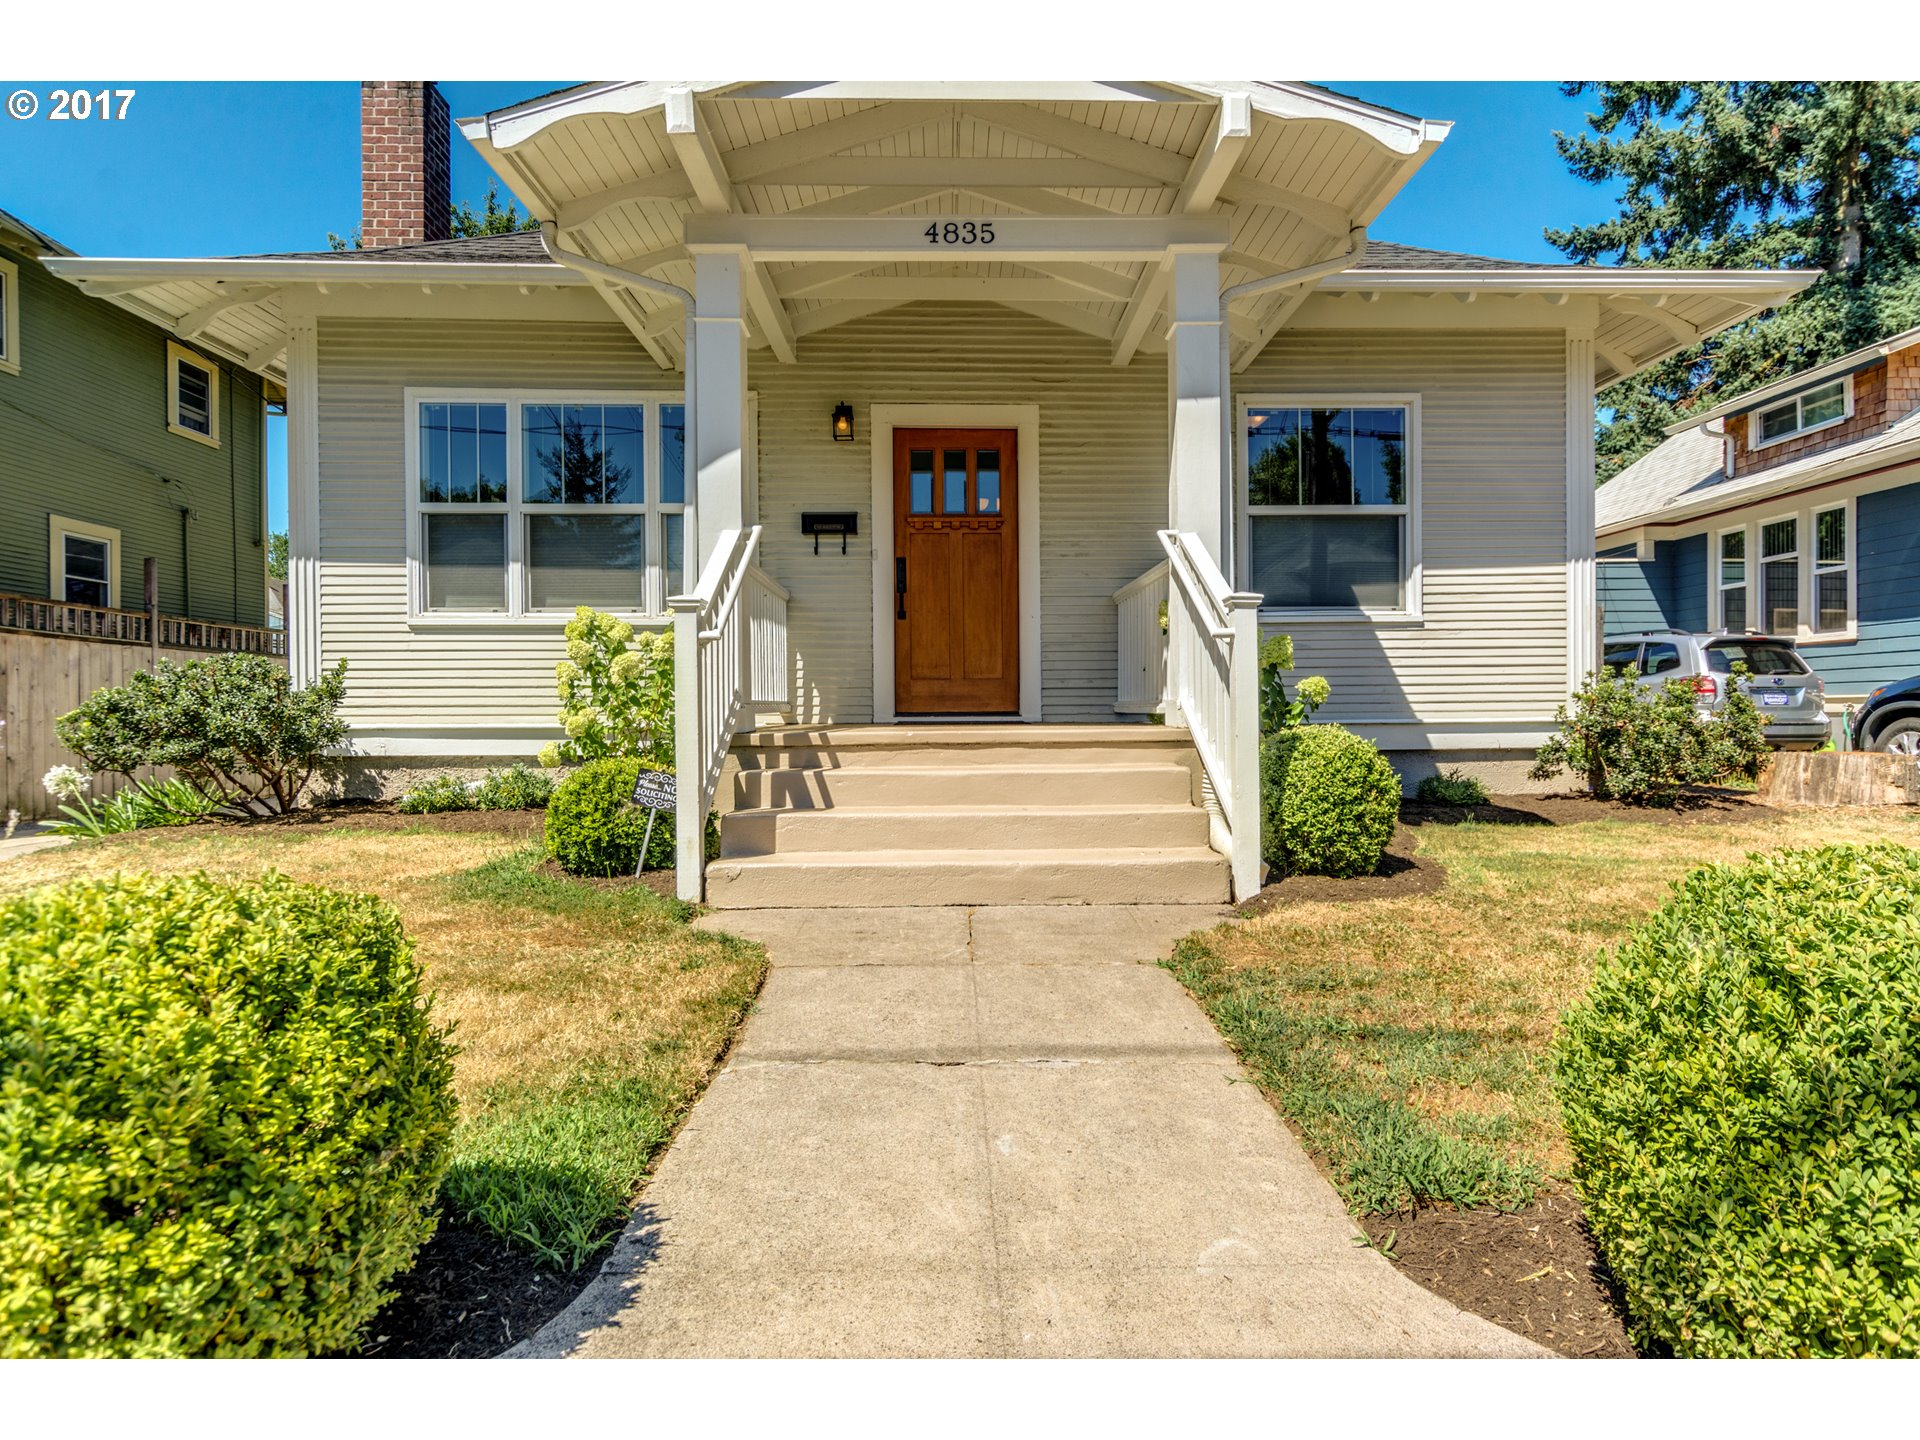 4835 Ne 22nd Ave, Portland, OR 97211